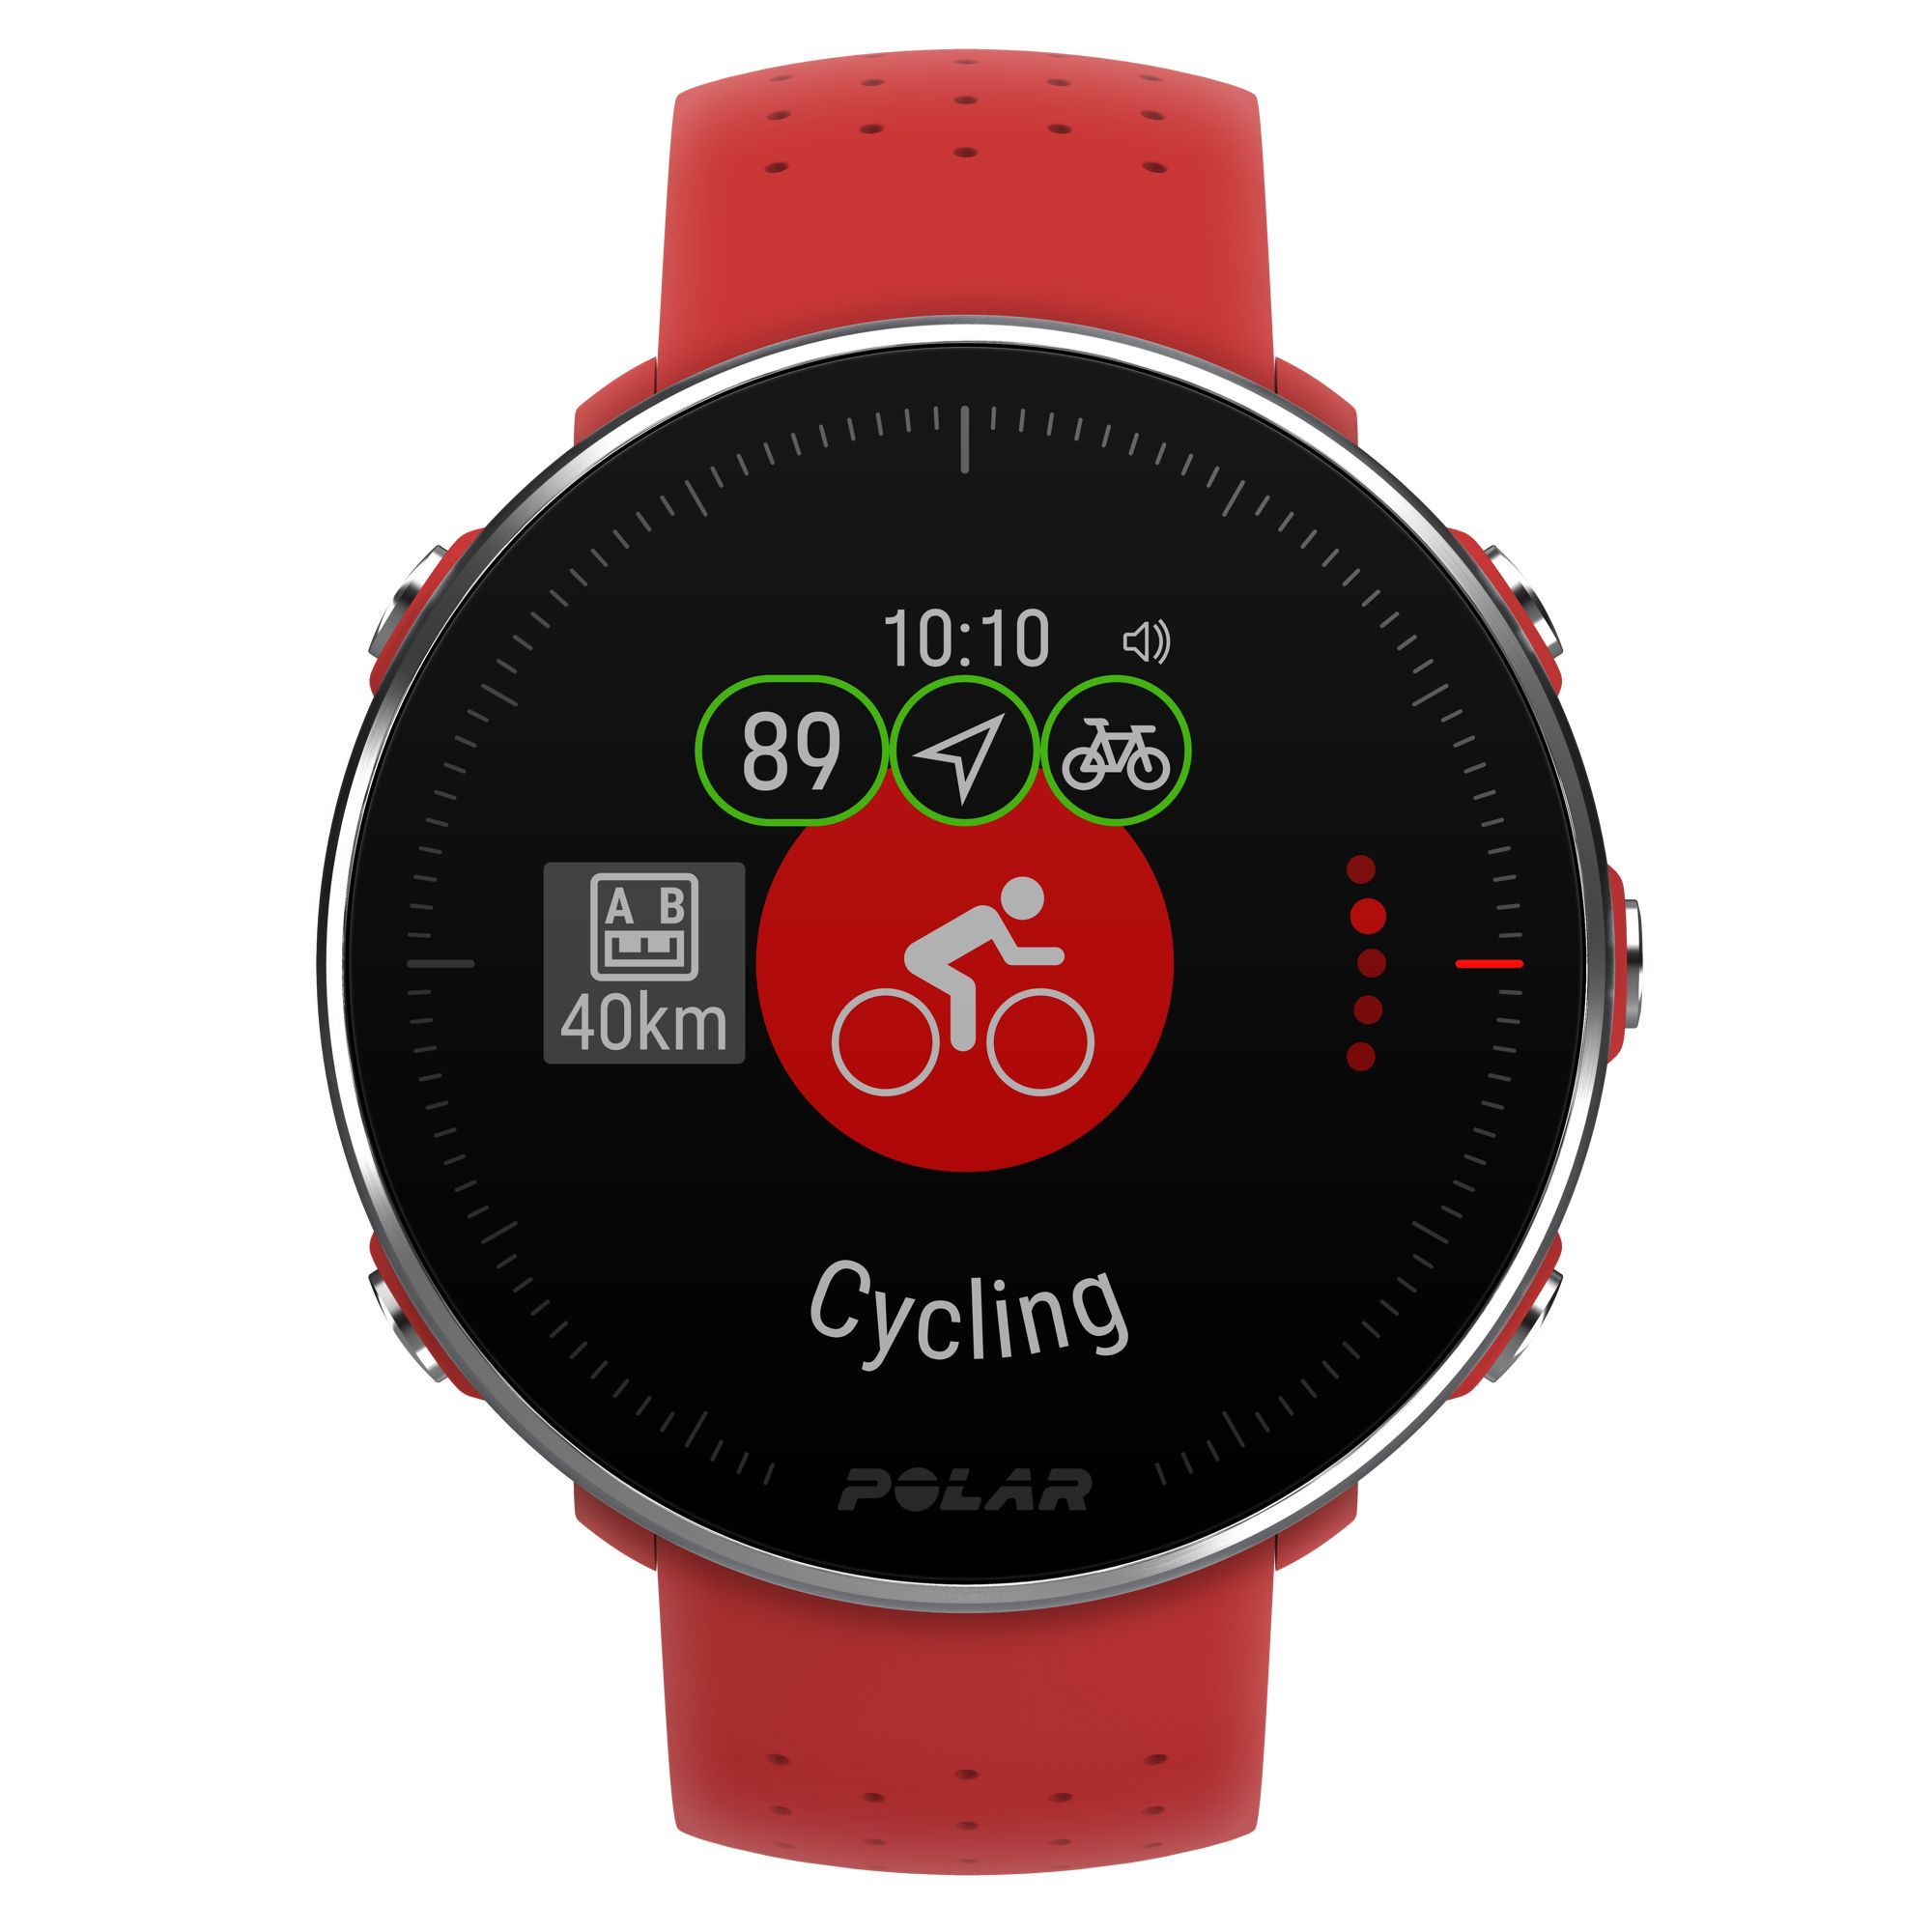 11 Best Sports Watches of 2019 - Top Fitness Watches for Tracking Workouts 13d024cba9